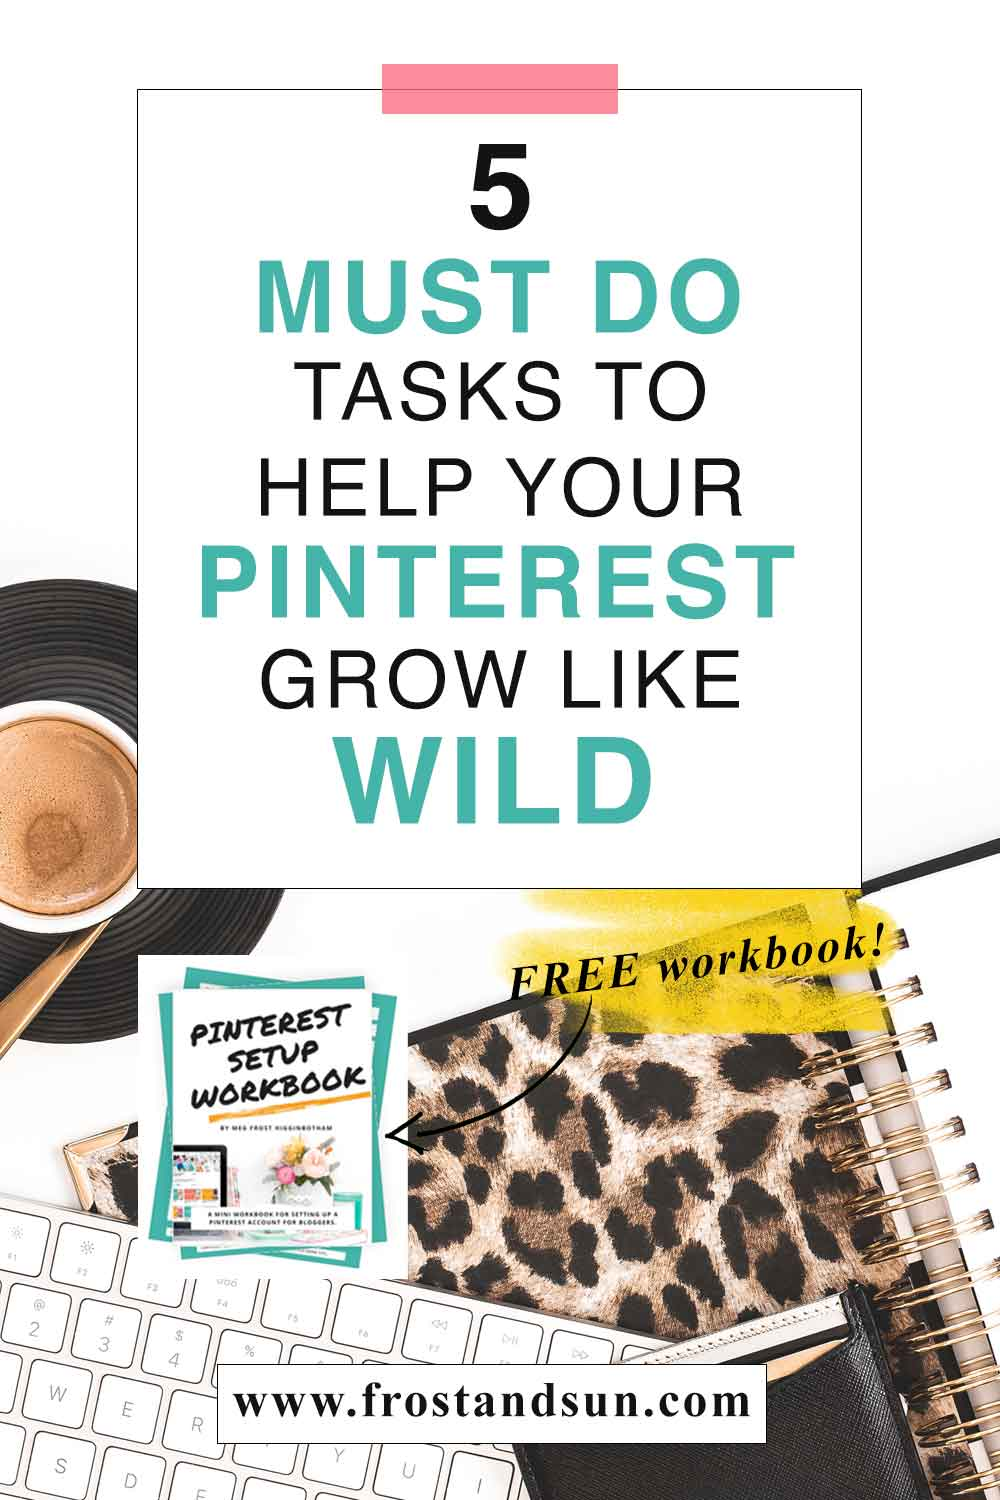 How to Get 1.8 Million Monthly Views on Pinterest [+ FREE workbook]